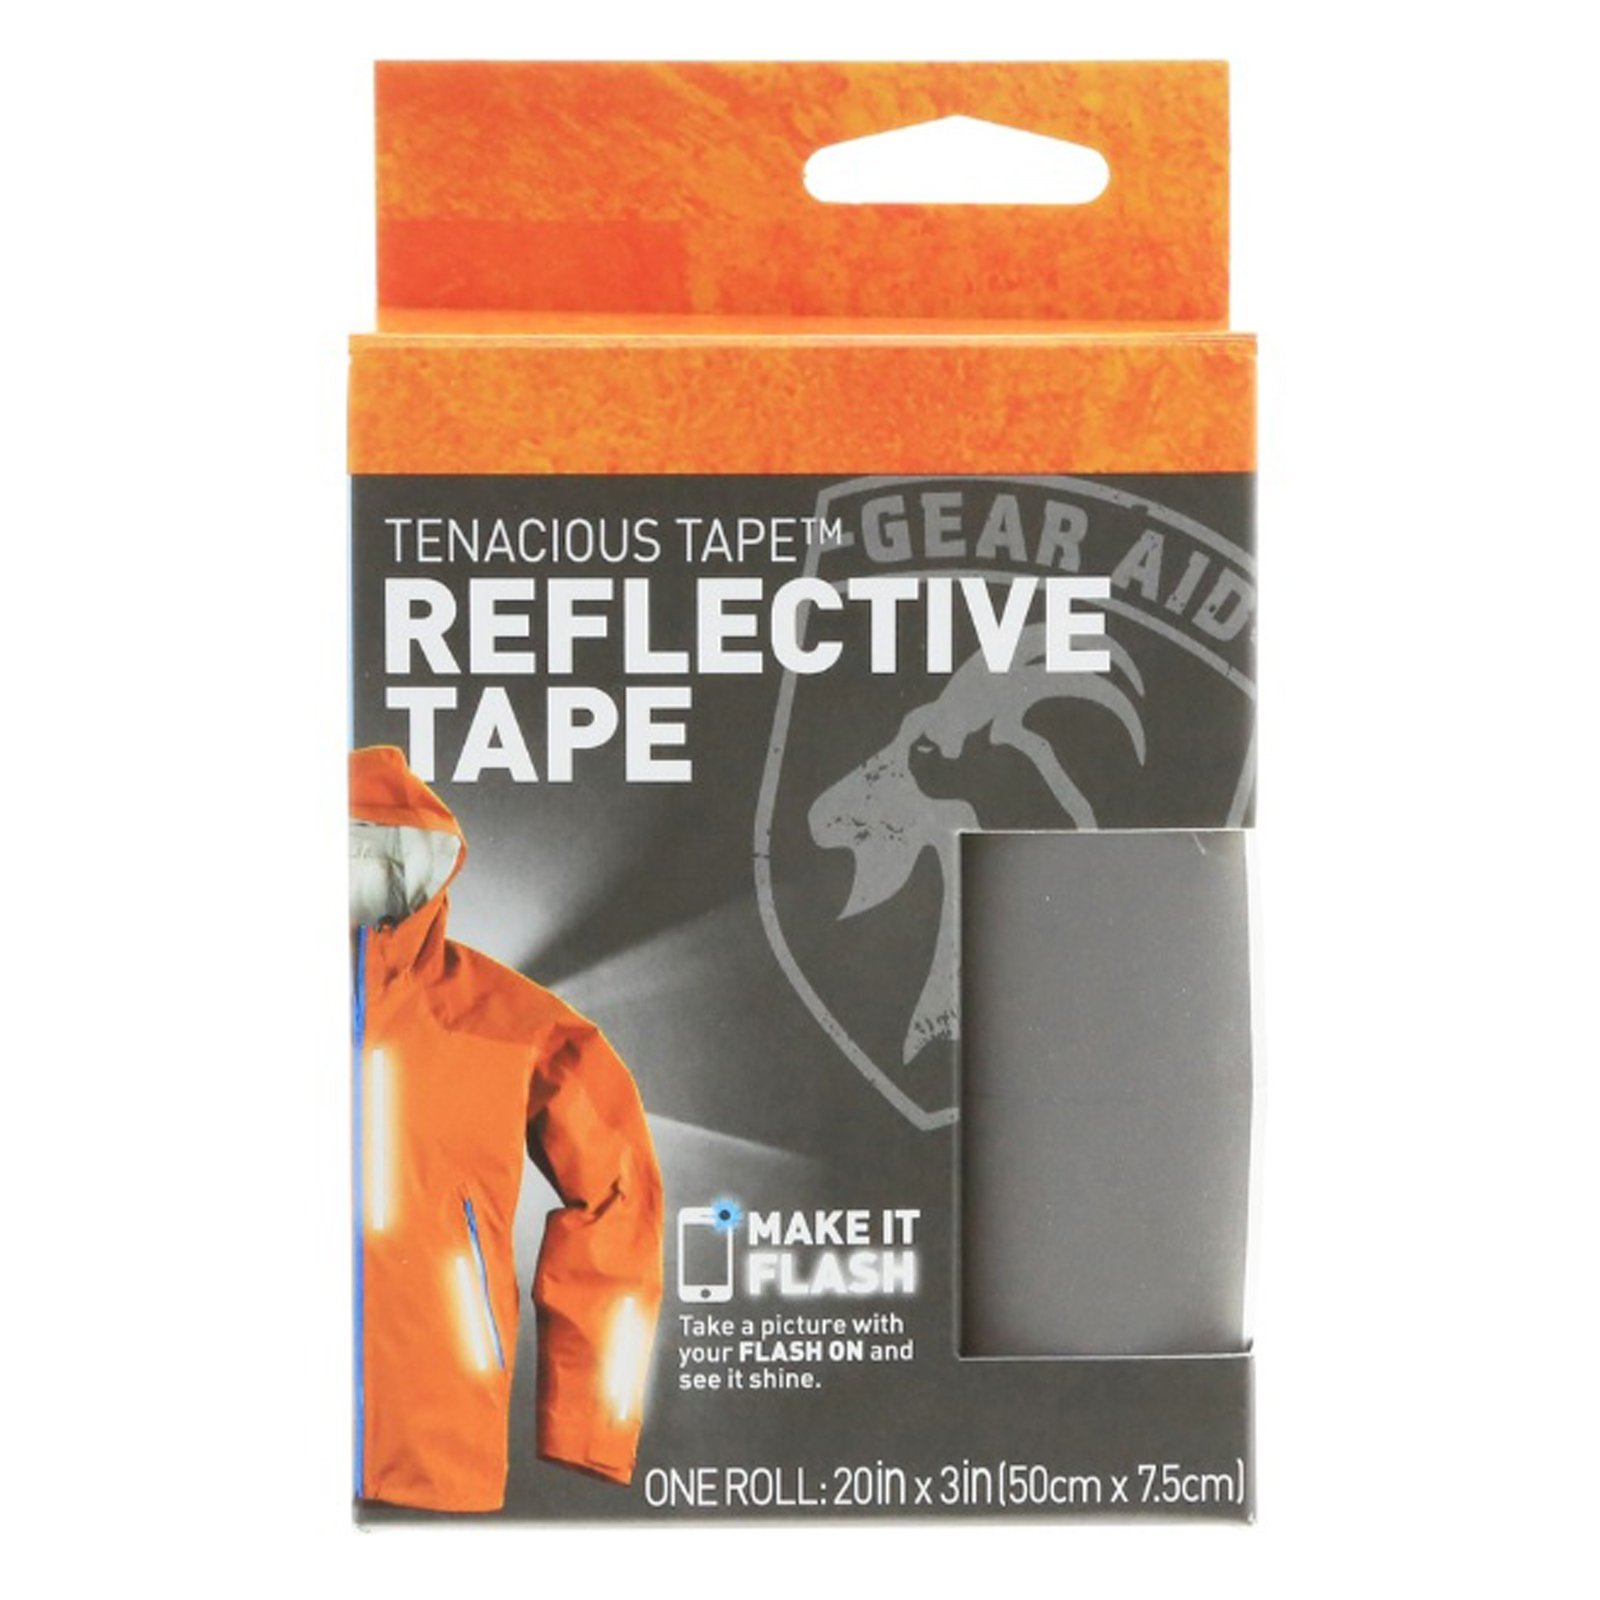 Gear Aid Reflective Fabric Tenacious Tape Outdoor Hiking Emergency Survival Kit